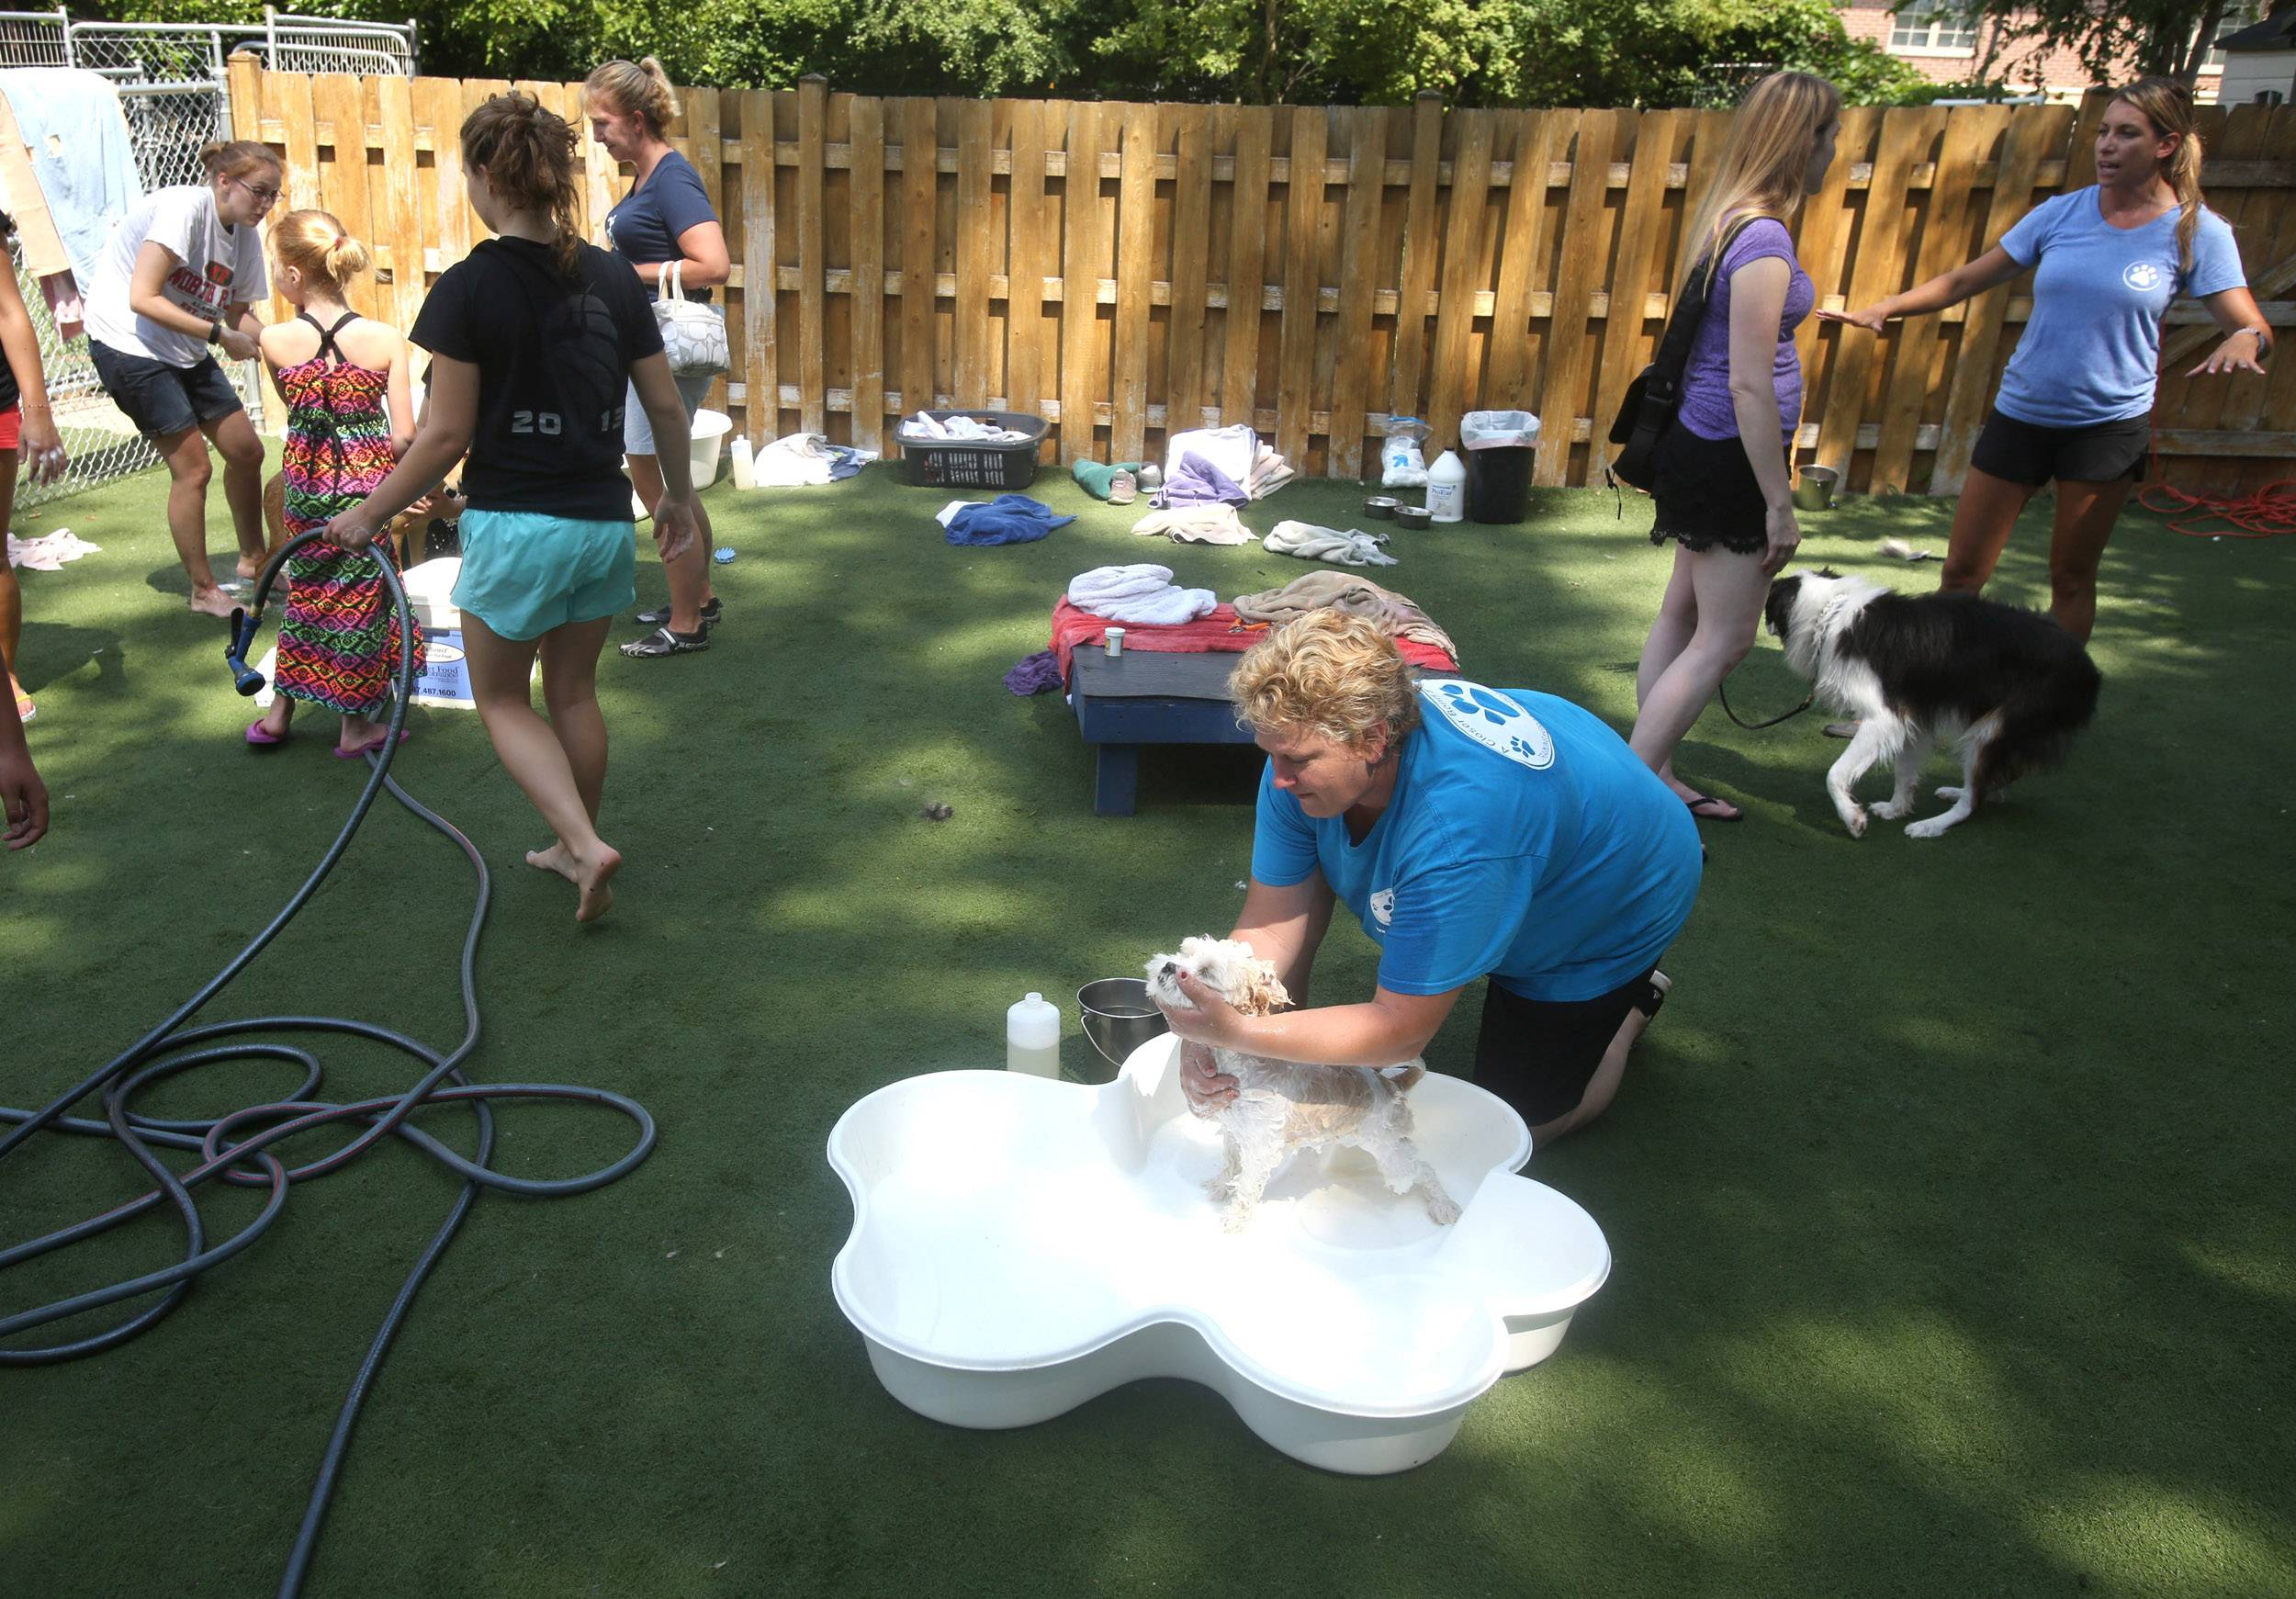 Katy Cushing, center, bathes a dog during a Charity Dog Wash and Adoption Event held Saturday at Closer Bond Dog Training in Palatine.